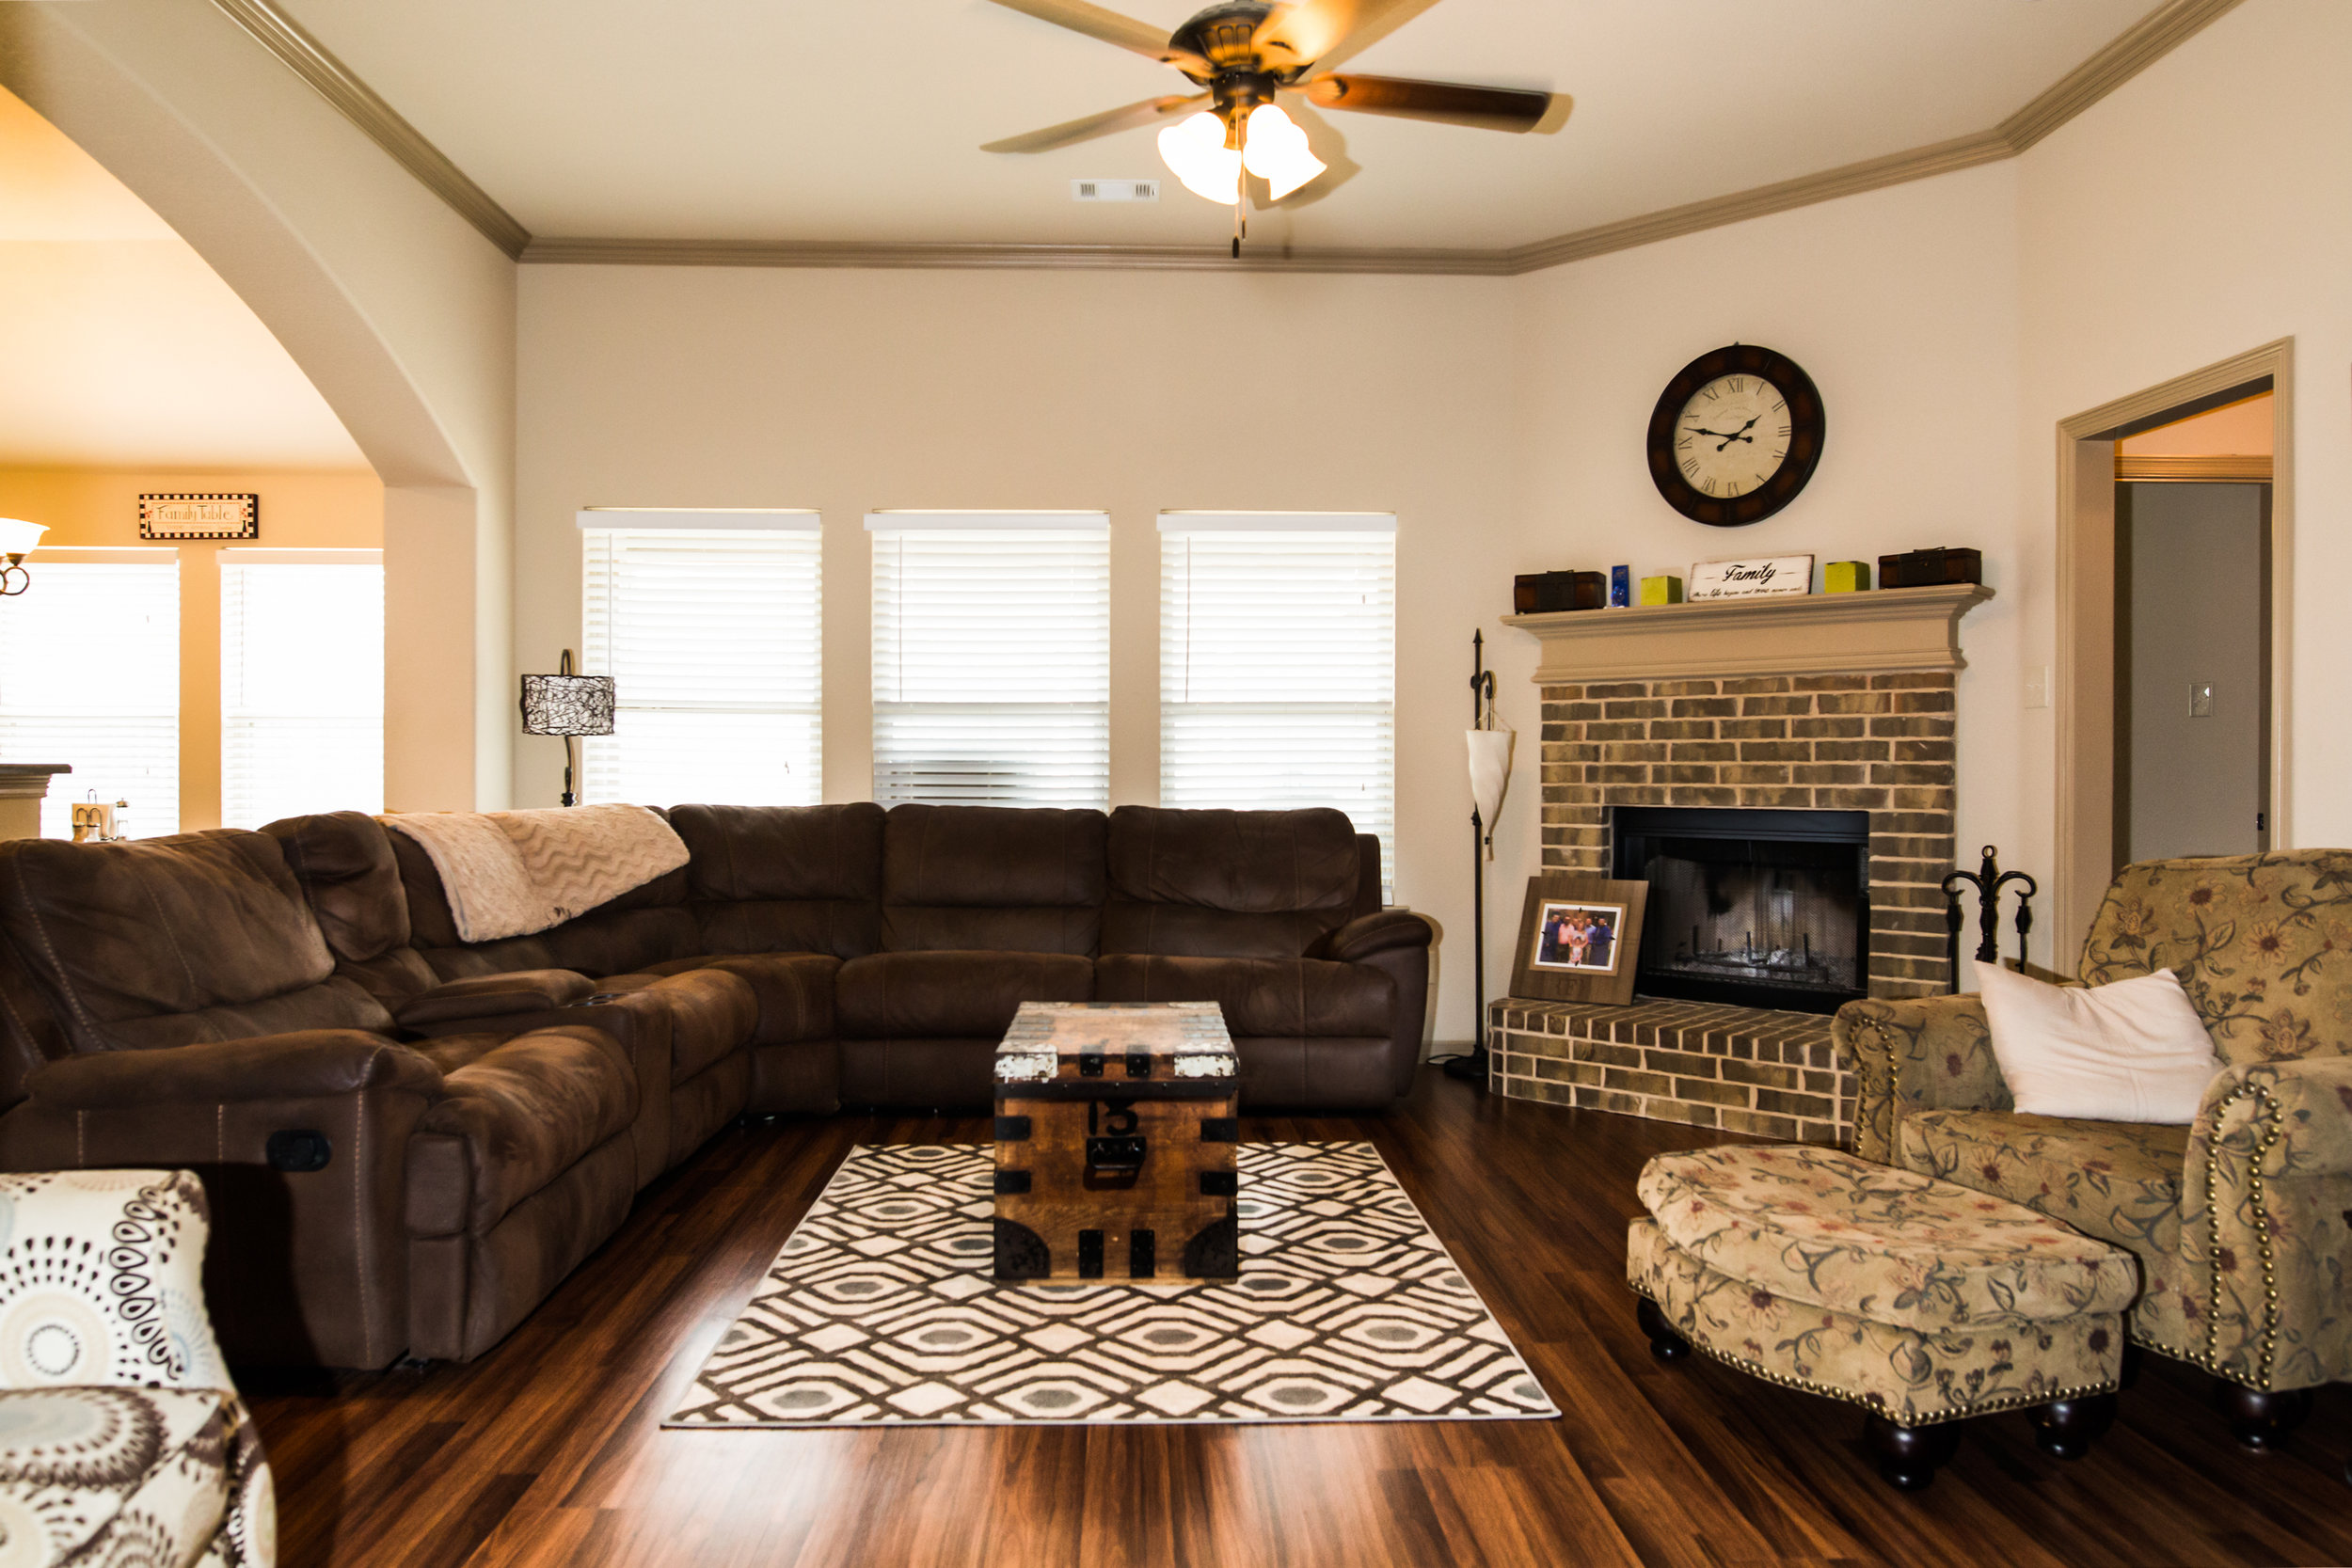 412 Cotton Bend Trail, Venus-9-Edit.jpg